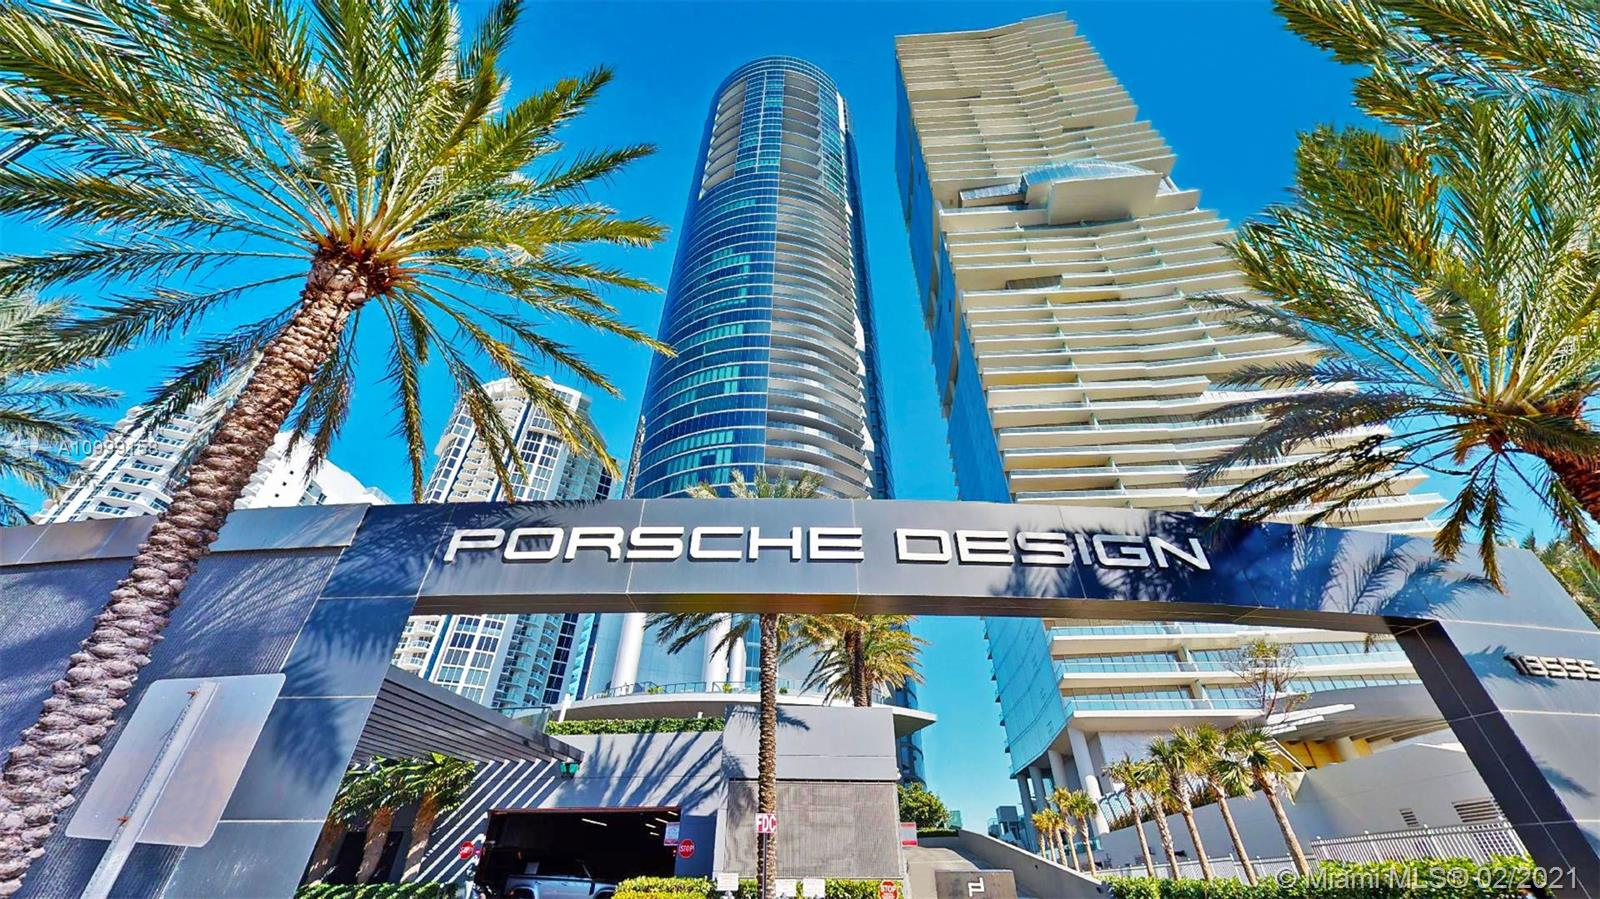 Enjoy contactless condo living with this Luxurious masterpiece in the sky.  This 4BD/4BTH heaven includes unobstructed views of the ocean, intercostal and Miami skyline. The Porsche designed one of a kind building features a 2 car sky garage for your unit so you can safely enter your new home without having to interact with anyone, as well as two private elevators. A private plunge pool in your oversized balcony to enjoy the ocean breeze. The amenities include a race car & golf stimulators, full-service restaurant, bar, room service, pool and 200 ft on the ocean with beach service. You can also enjoy the oceanfront spa with fitness complex, yoga and massage rooms, Vichy showers and hair salon. World class security so you can live in peace knowing that you and your family are protected 24/7